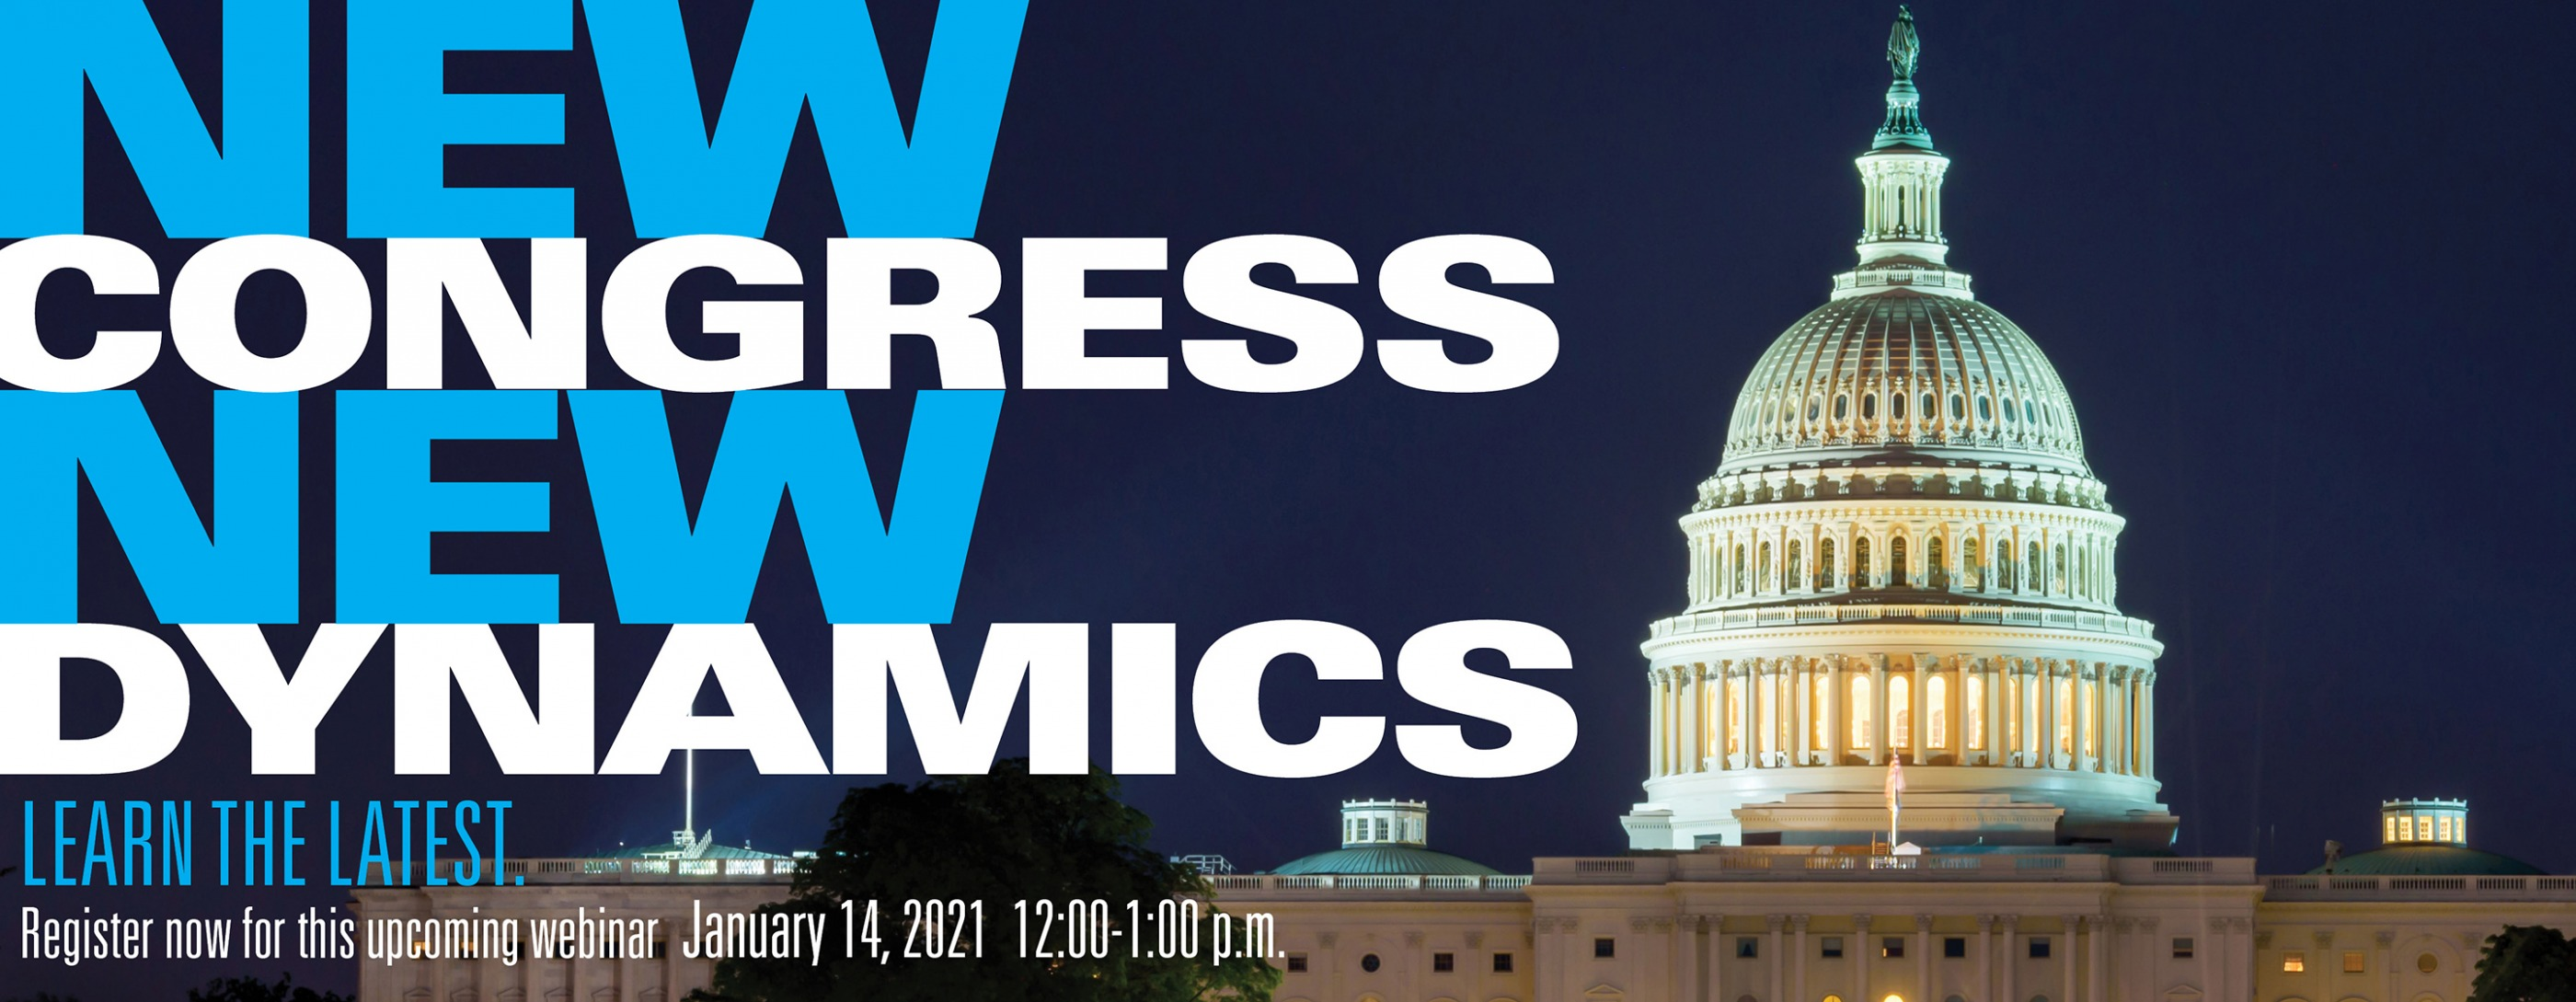 Learn the latest. Register for New Congress, New Dynamics.